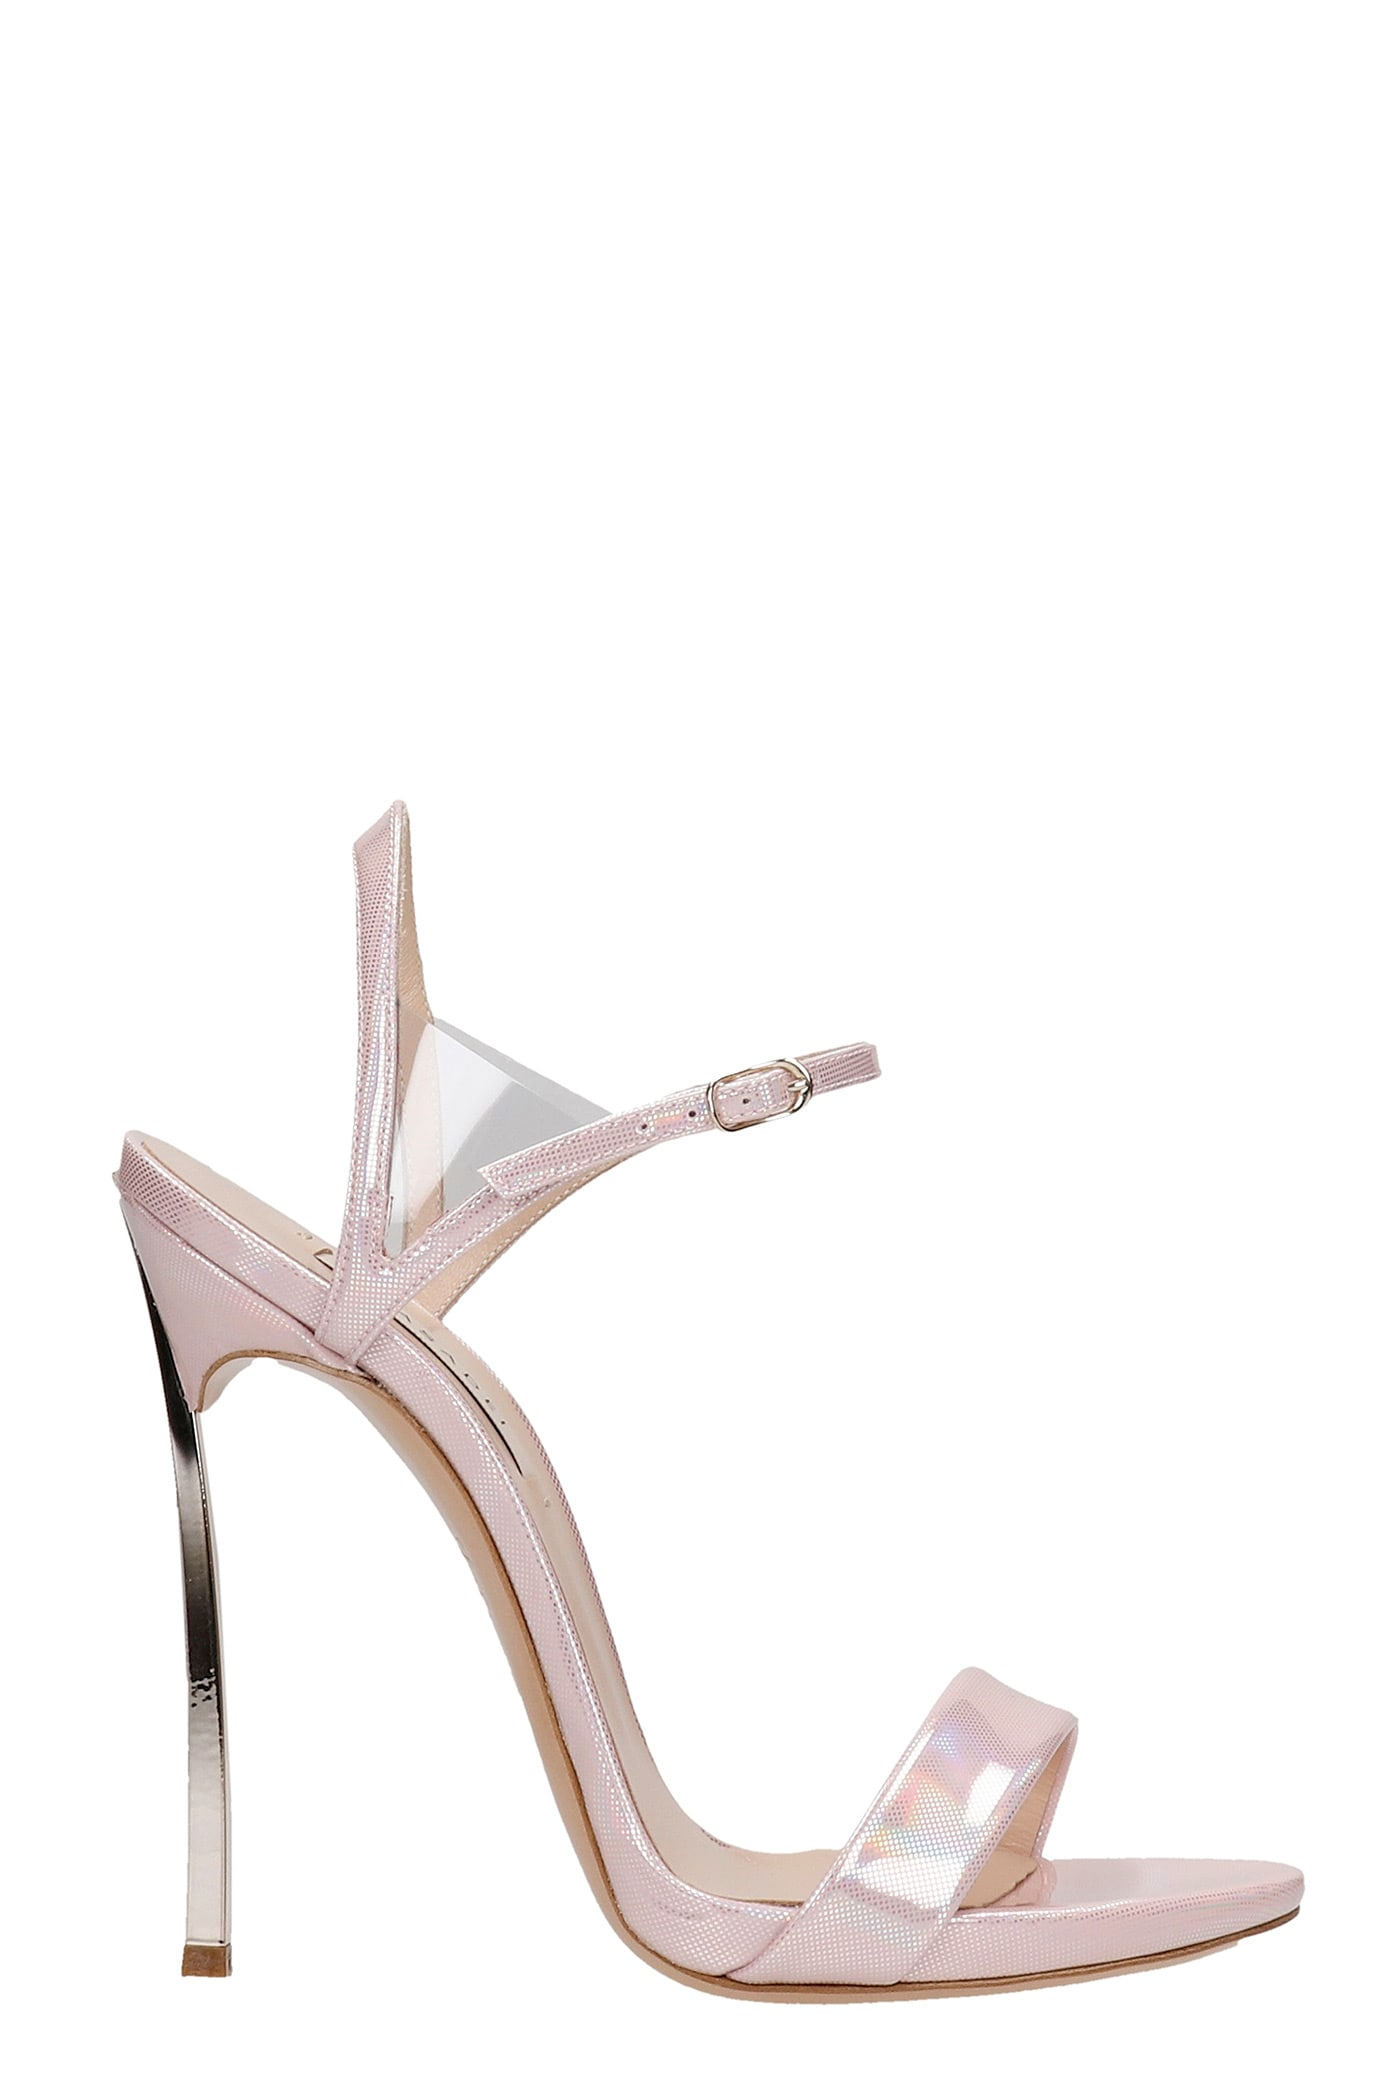 Casadei Leathers SANDALS IN ROSE-PINK LEATHER